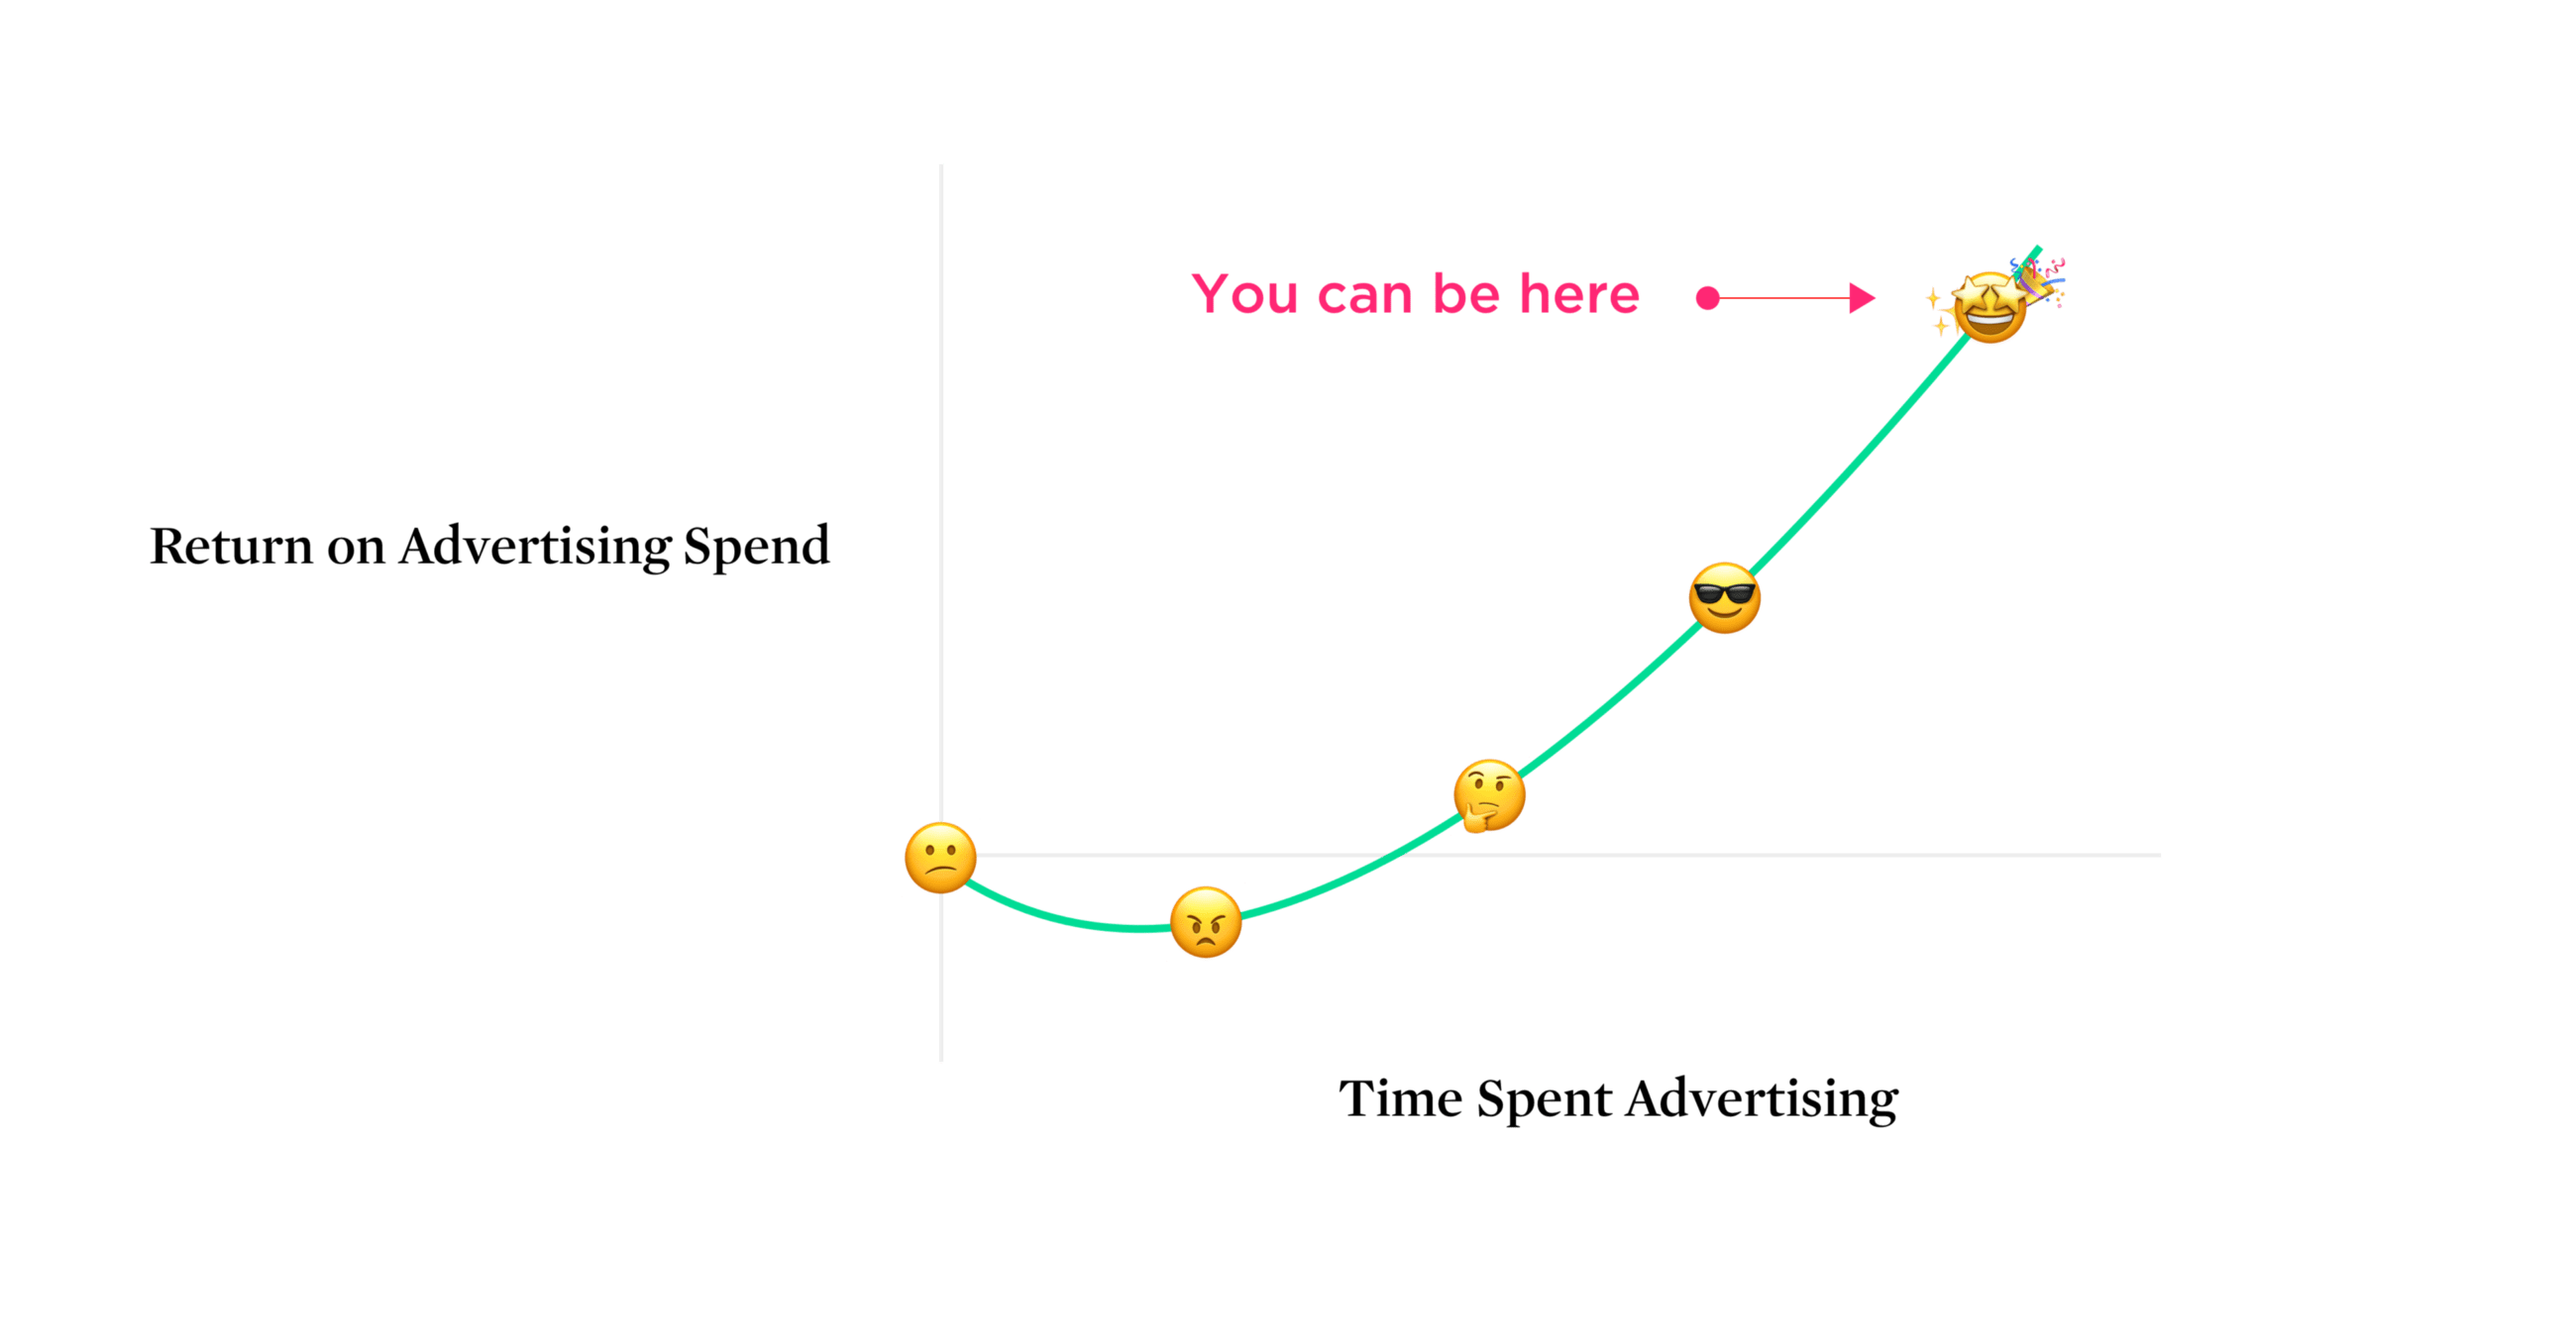 jack and the beanstalk plot diagram kia spectra wiring what should i expect from my first ad campaign marketing growth hacking